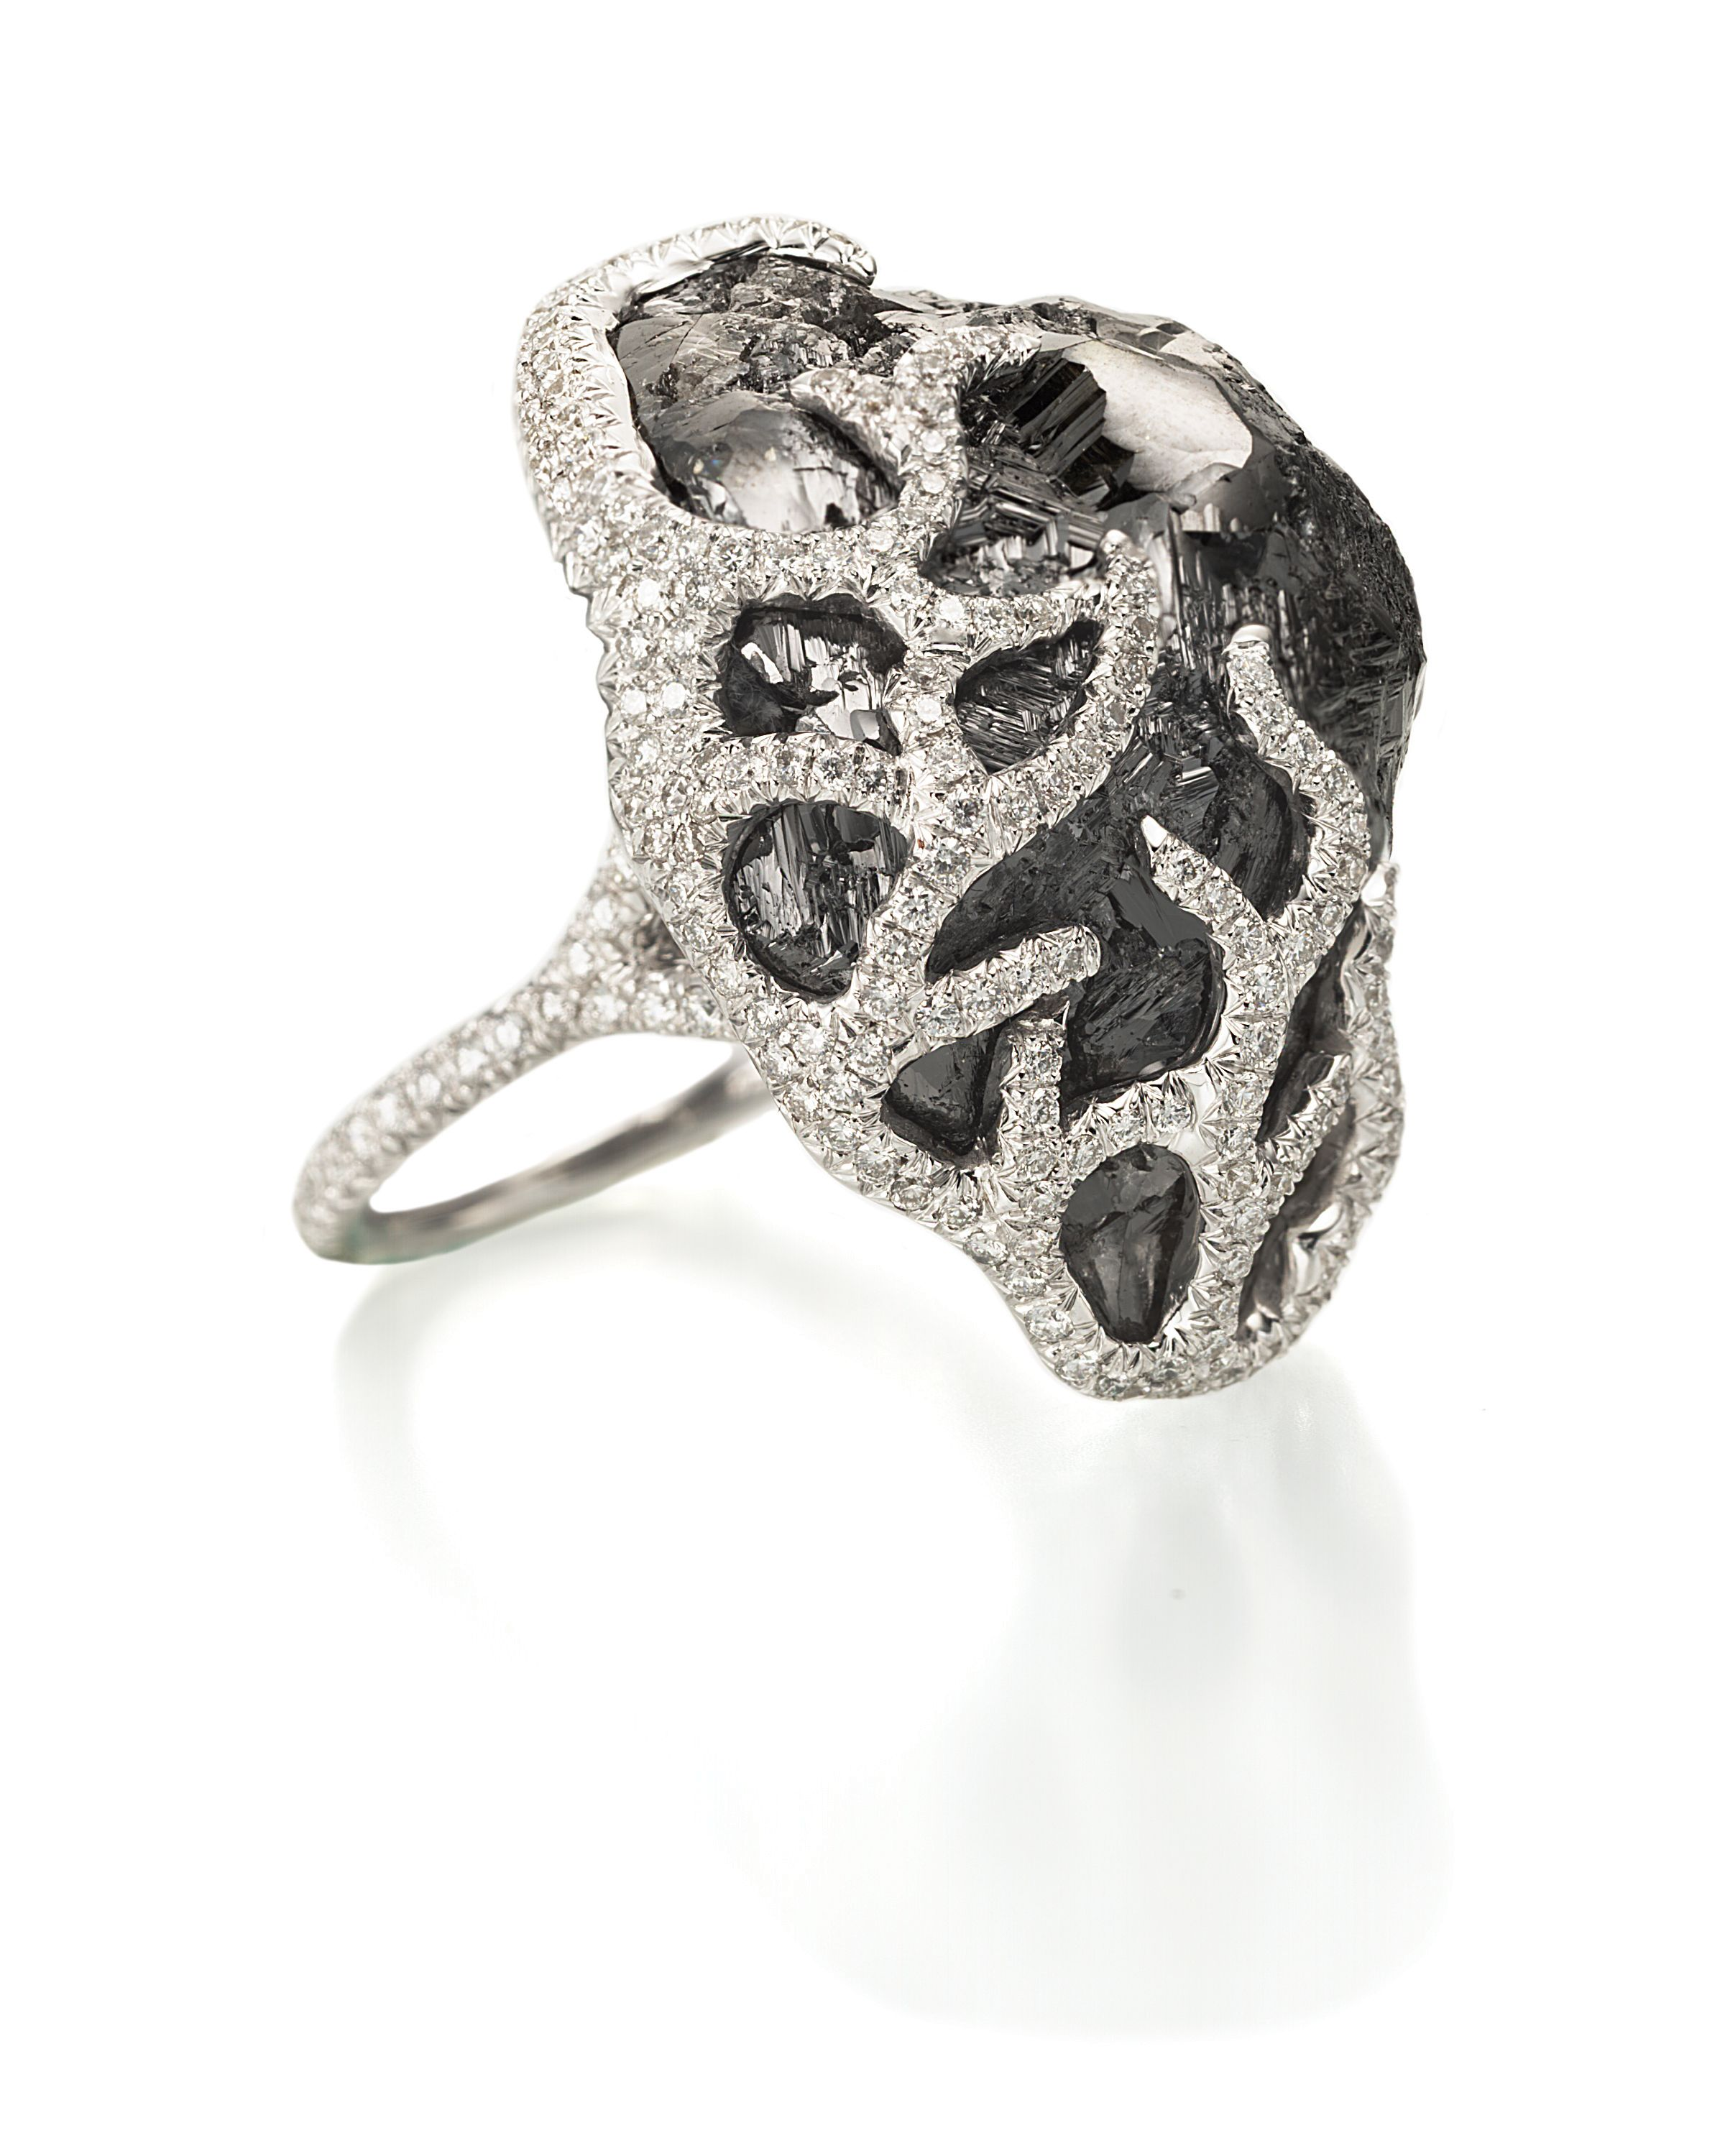 A 56 carat rough black diamond cocktail ring definitely only for